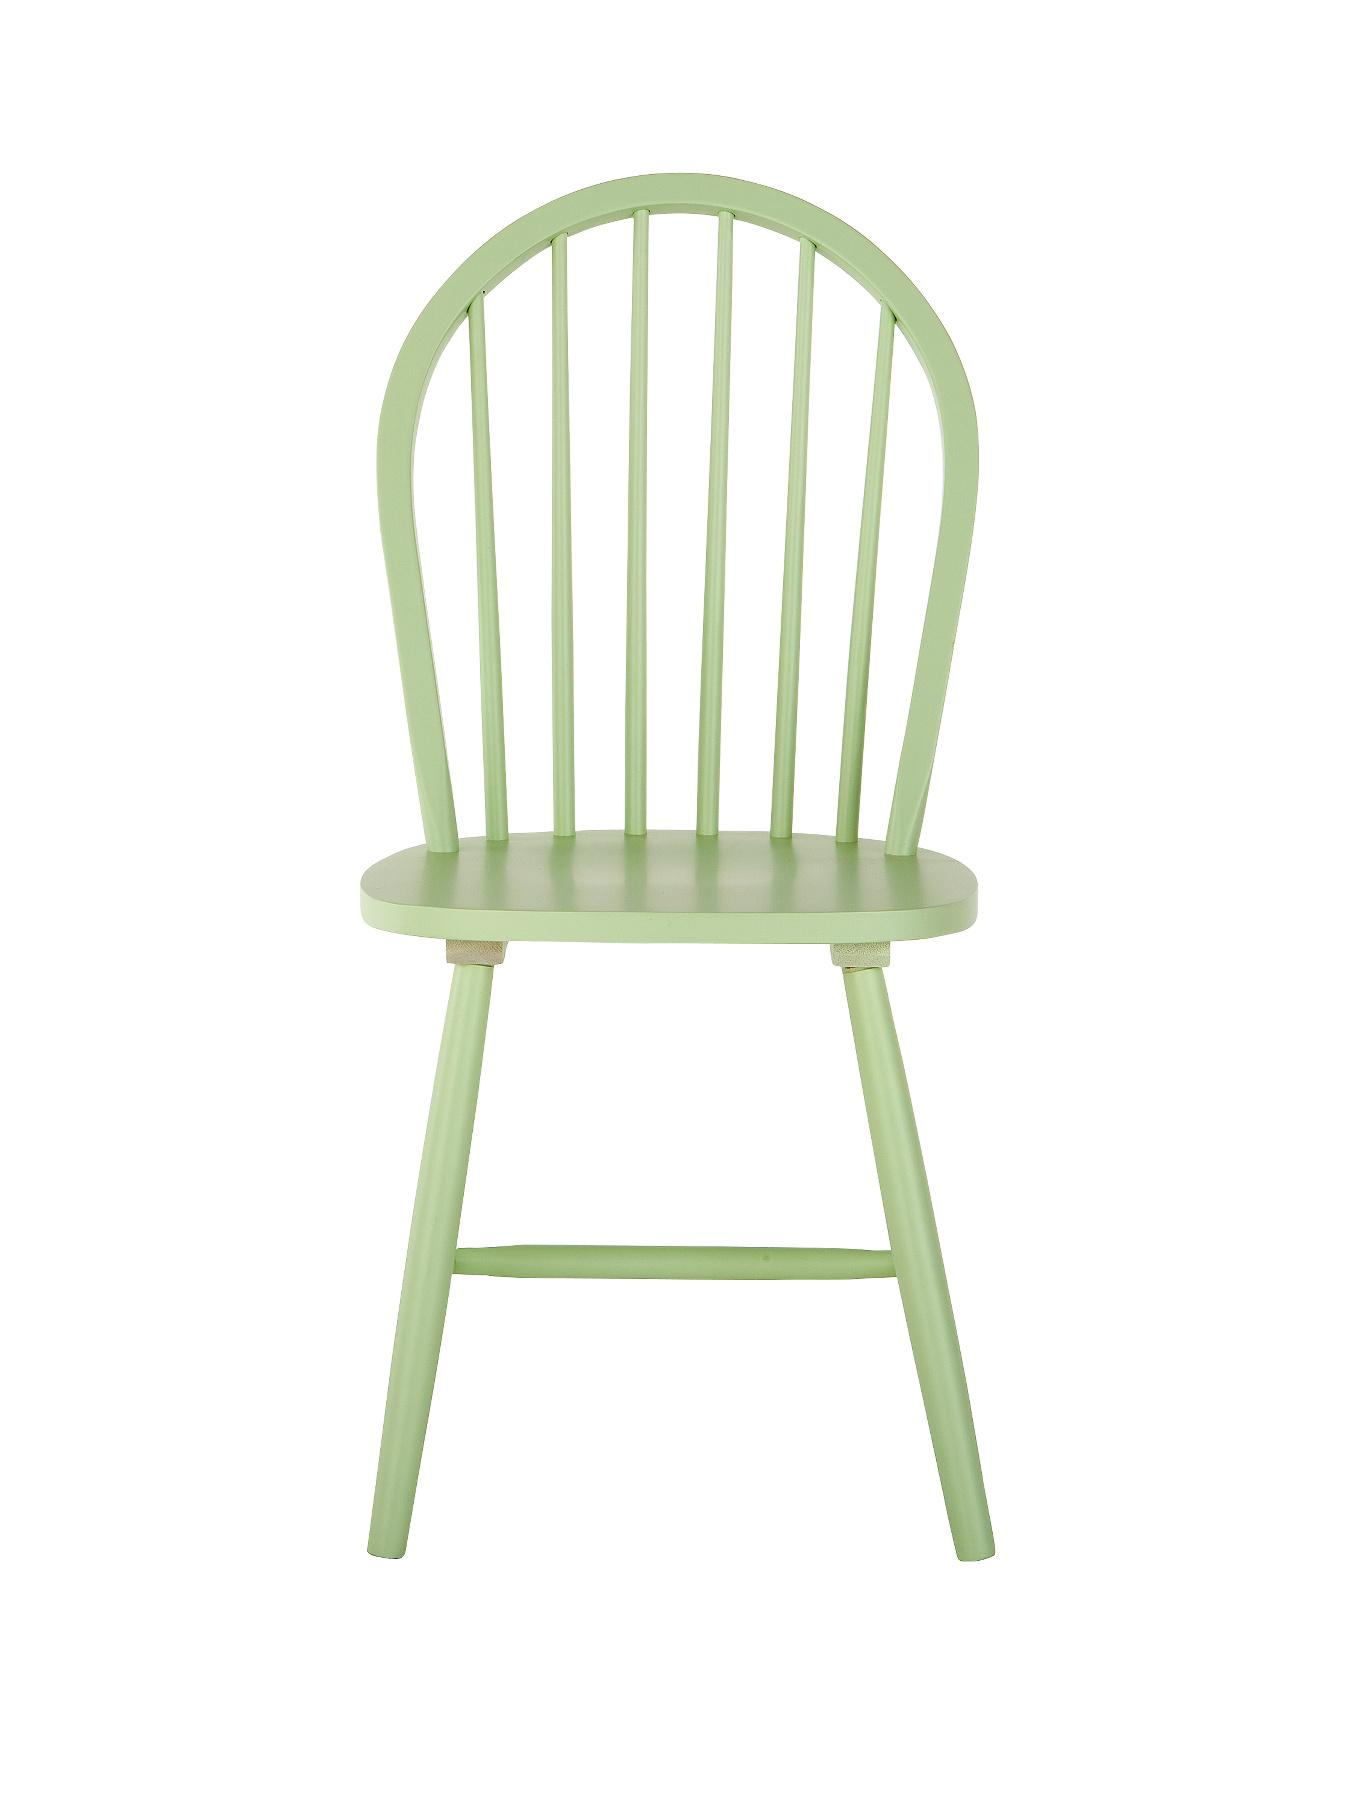 Daisy Chair - Green - Green, Green